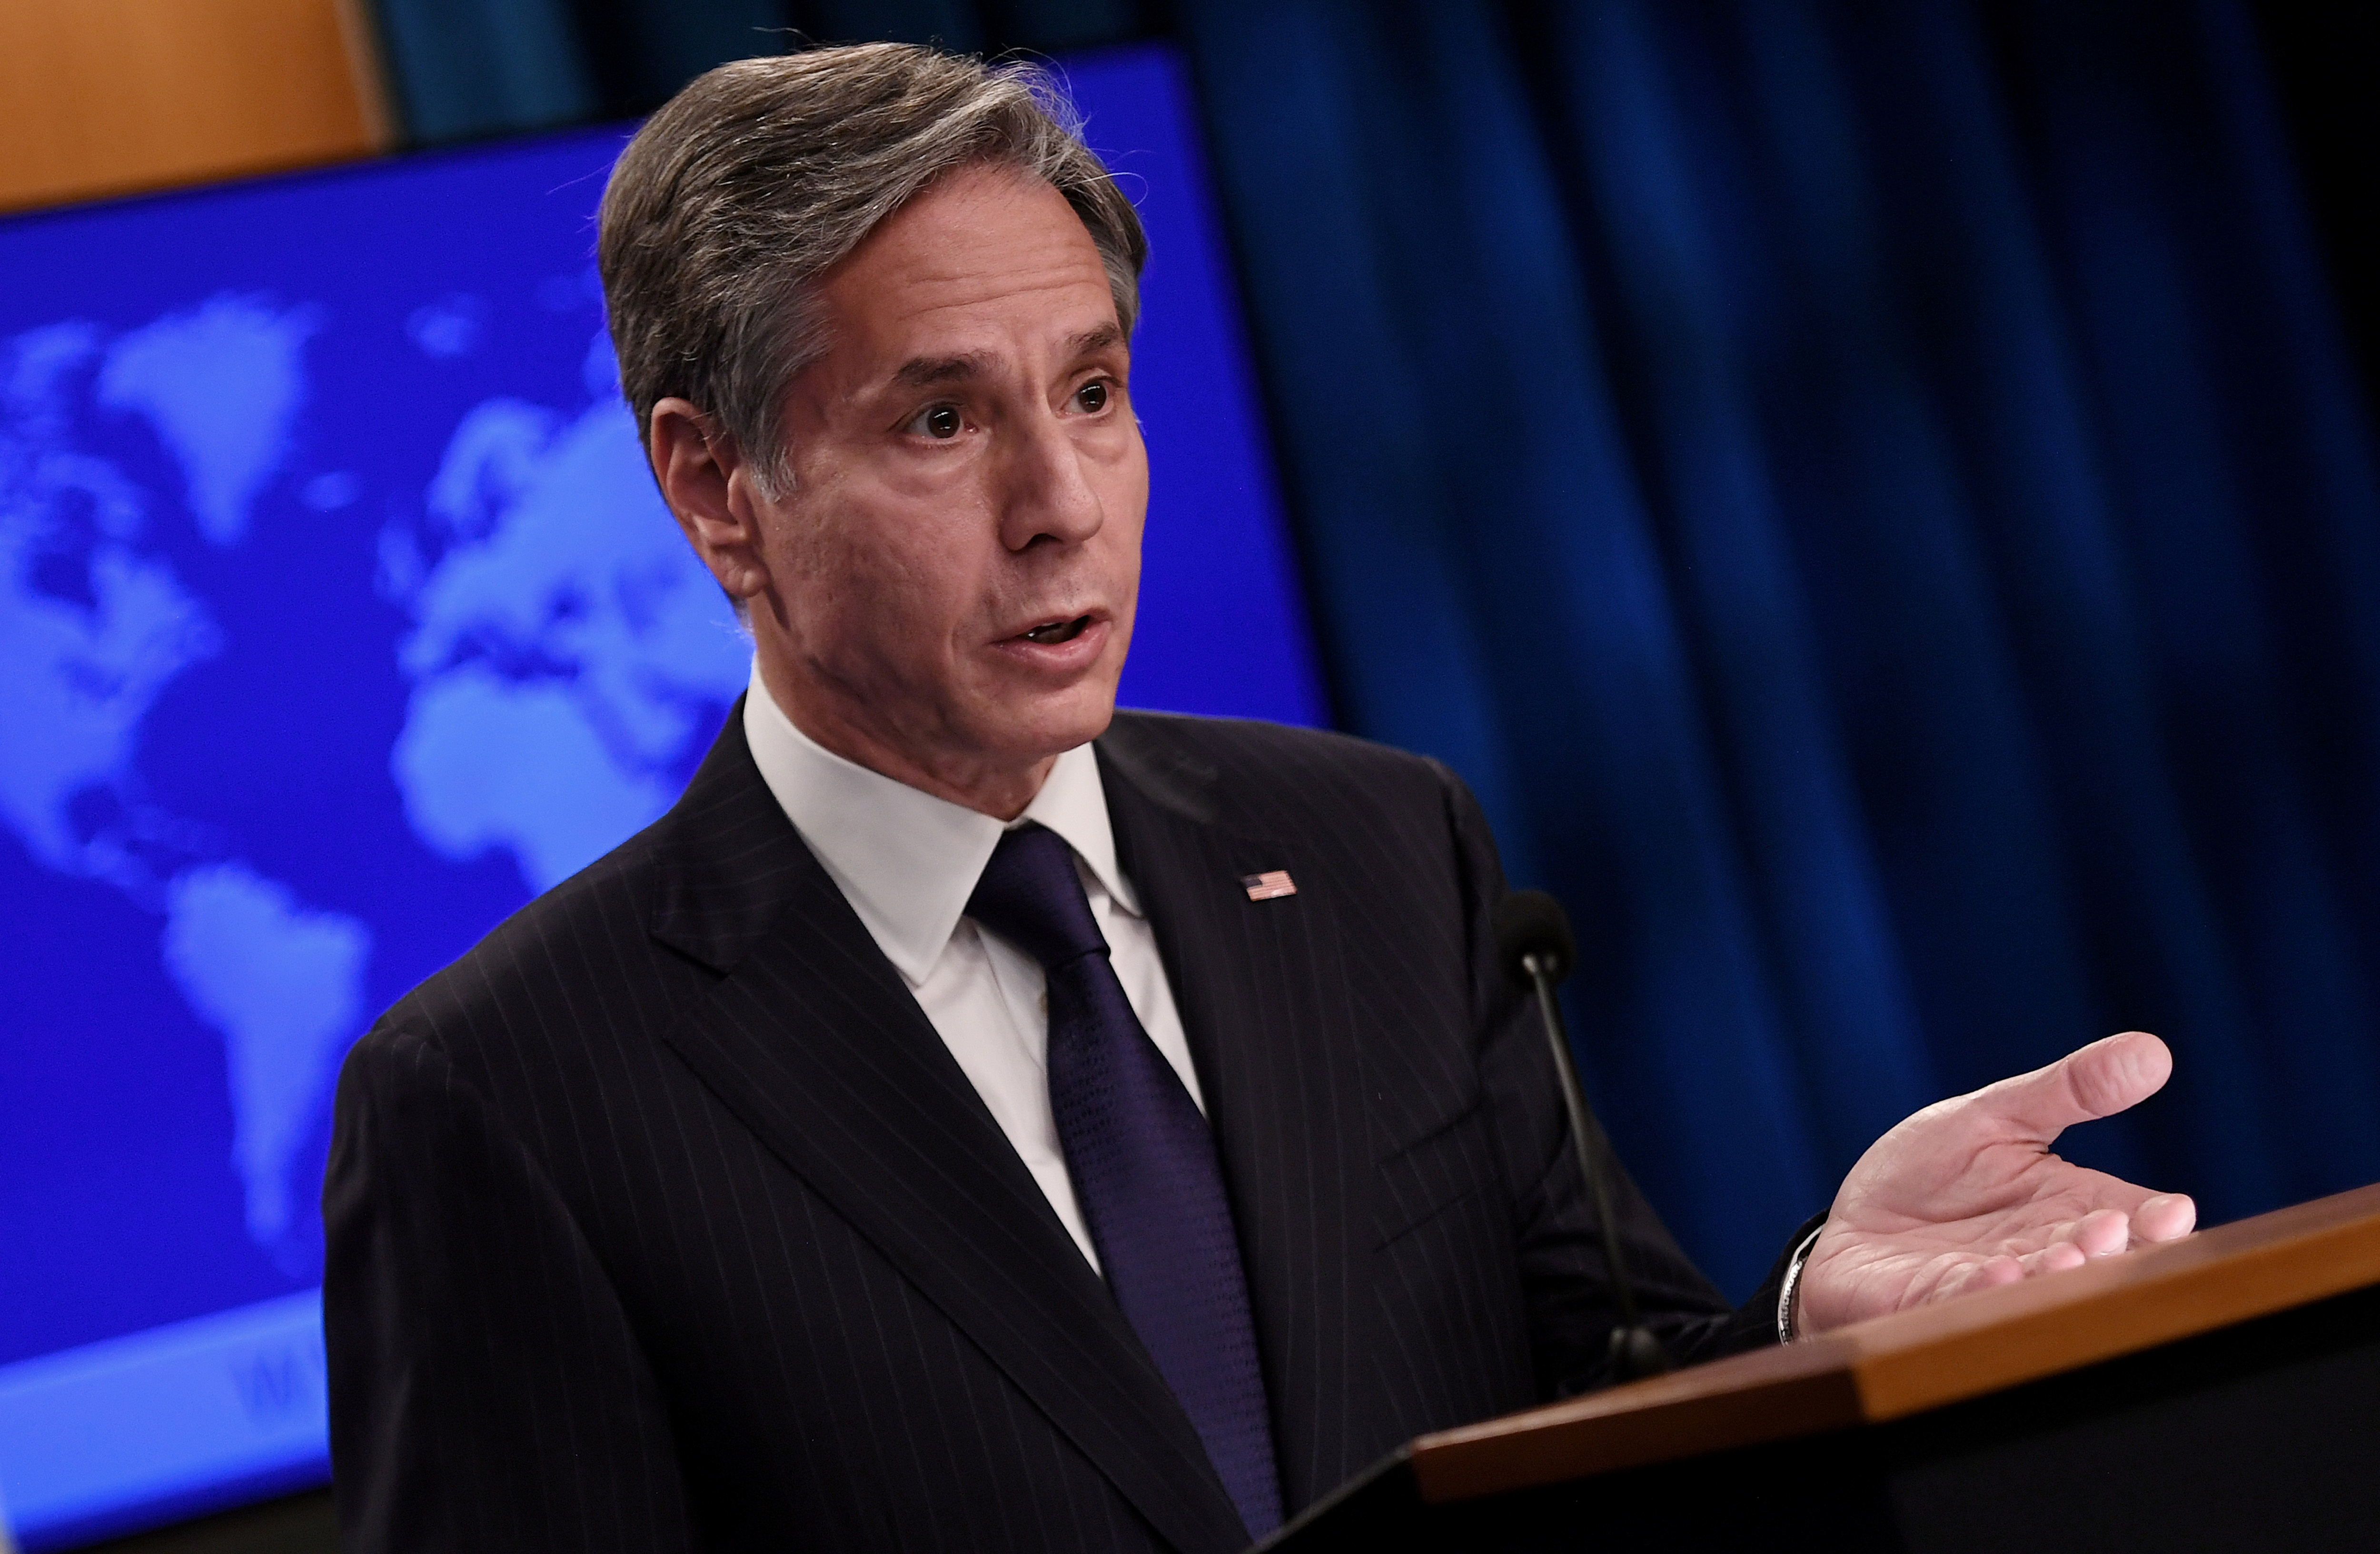 U.S. Secretary of State Antony Blinken speaks about Afghanistan during a media briefing at the State Department, in Washington, U.S., September 3, 2021. Olivier Douliery/Pool via REUTERS